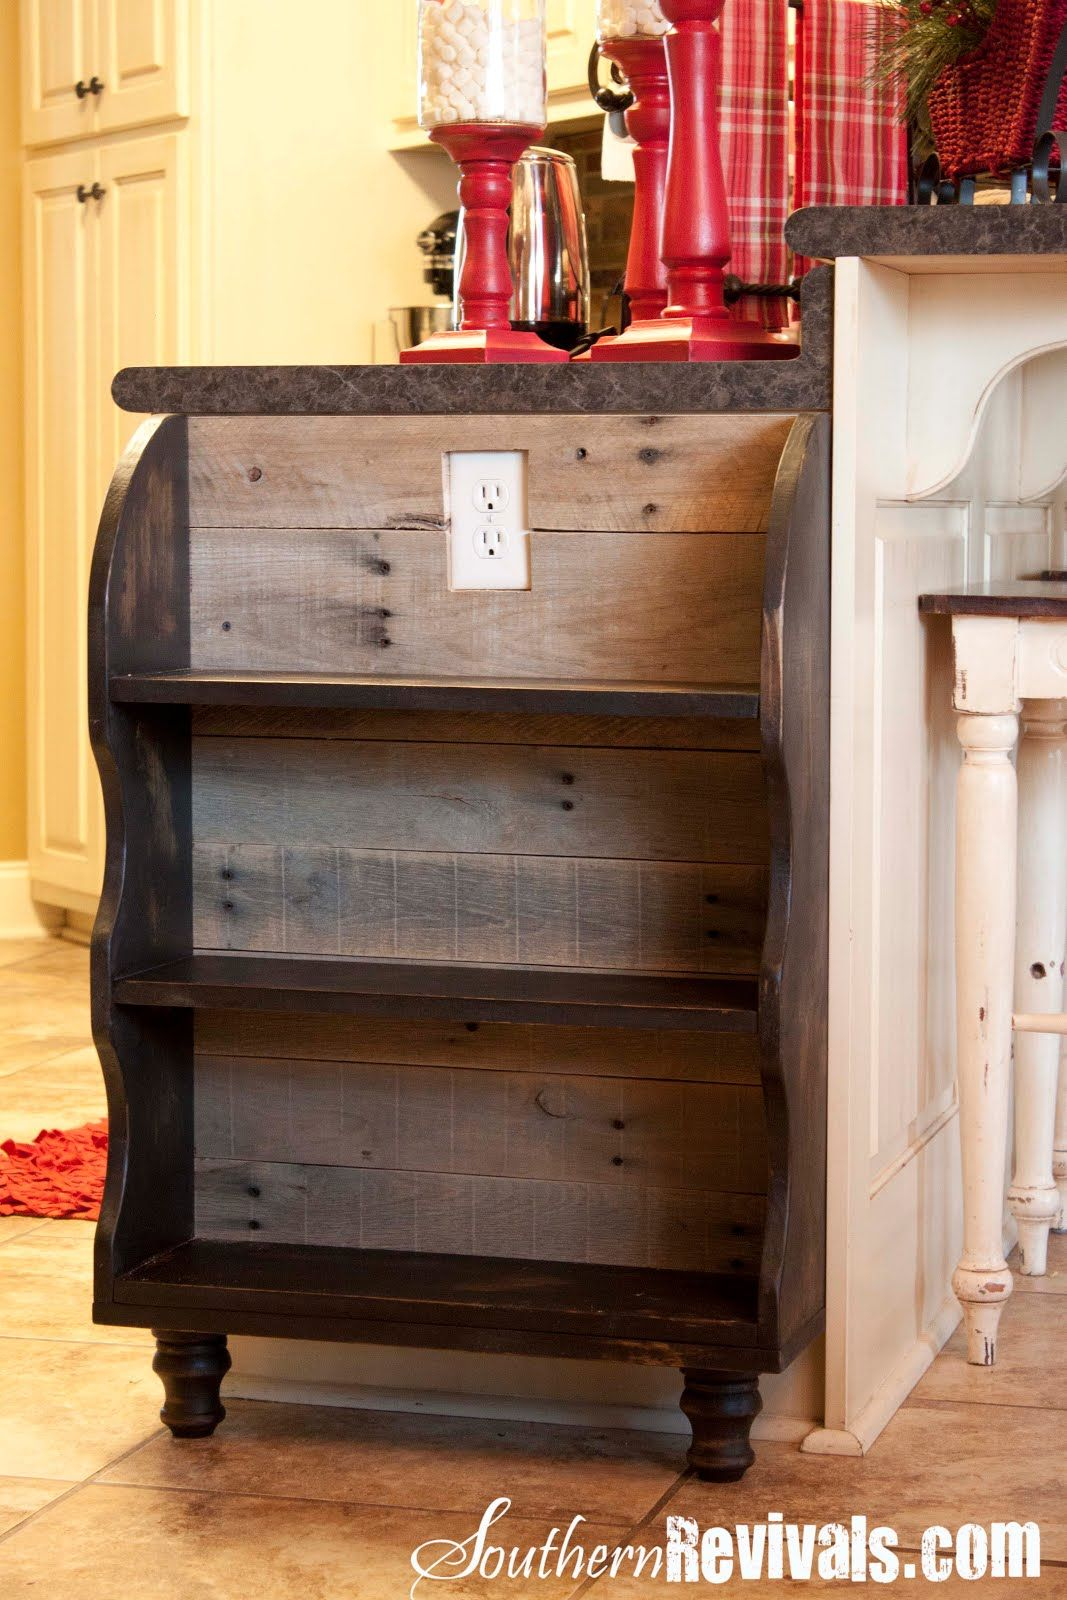 Southern revivals love the bookshelf idea for a kitchen island so